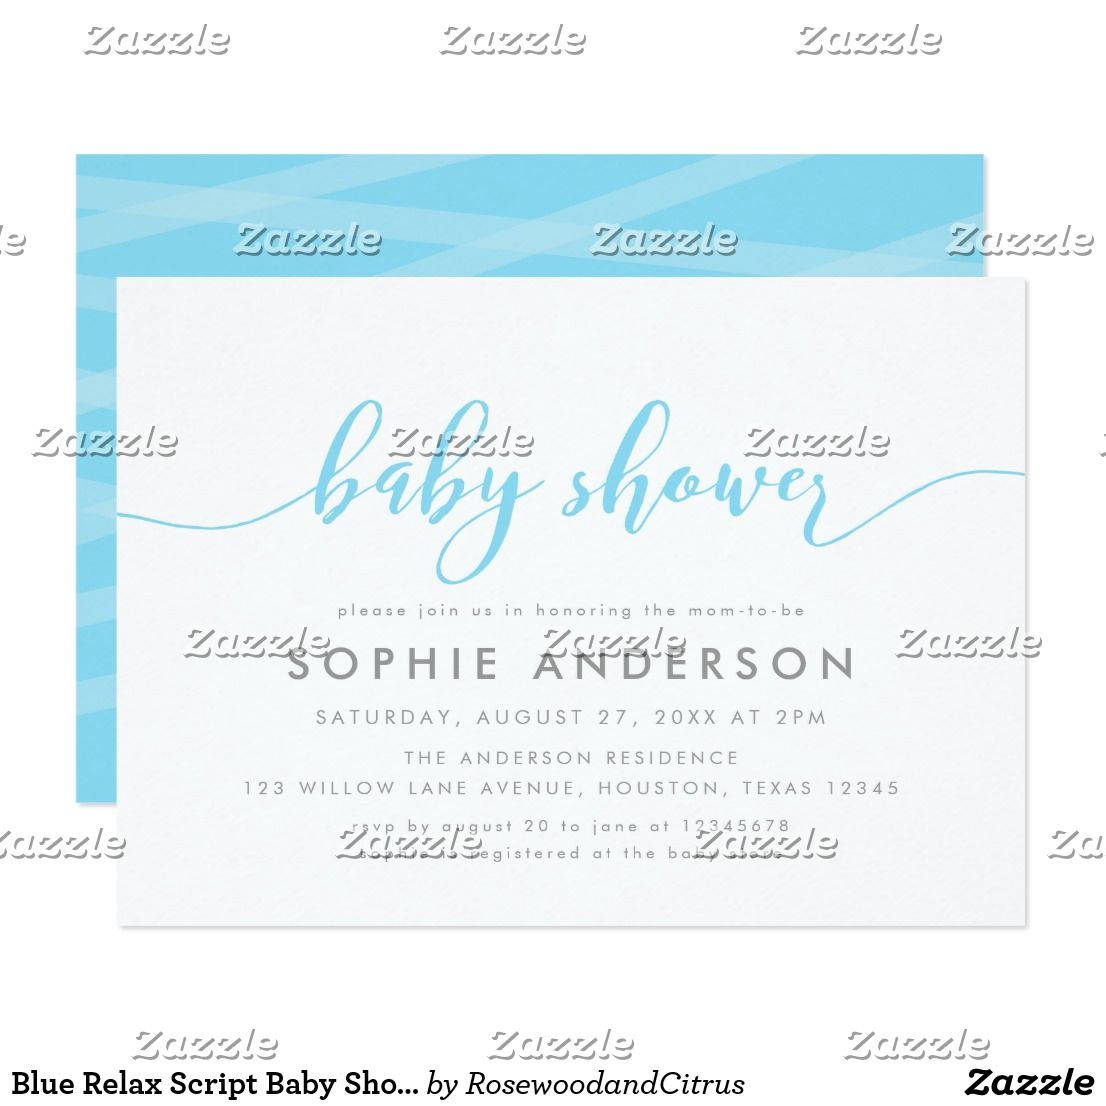 Blue relax script baby shower invitation babies and baby showers blue relax script baby shower invitation stylish baby shower invitation featuring the words baby shower in a relax cursive script in light blue against a filmwisefo